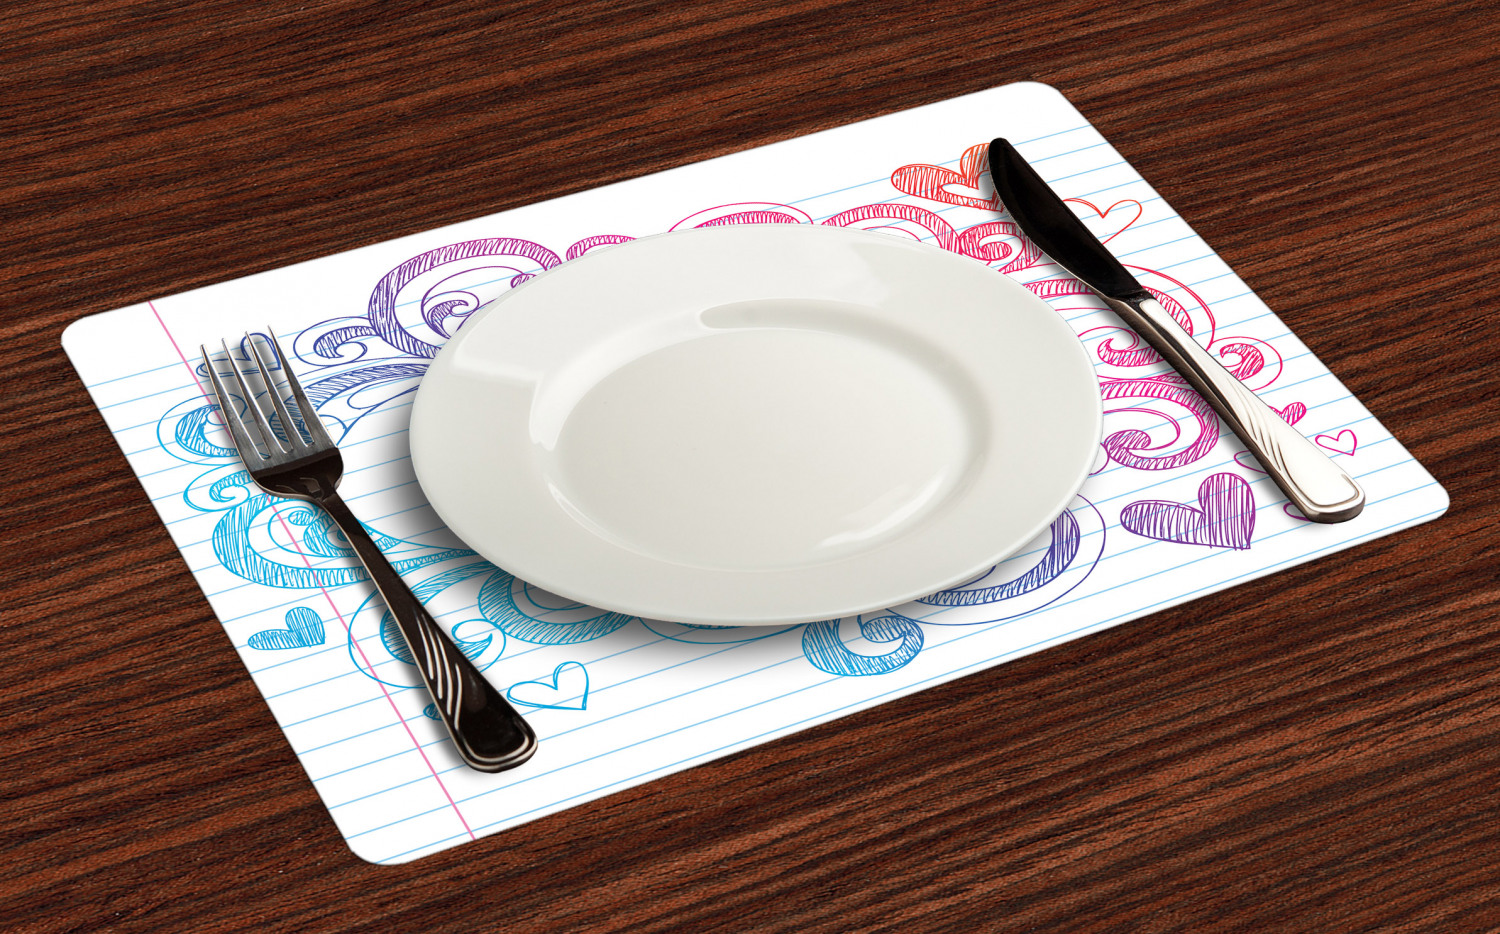 Ambesonne-Fabric-Place-Mats-Set-of-4-Placemats-for-Dining-Room-and-Kitchen-Table thumbnail 53